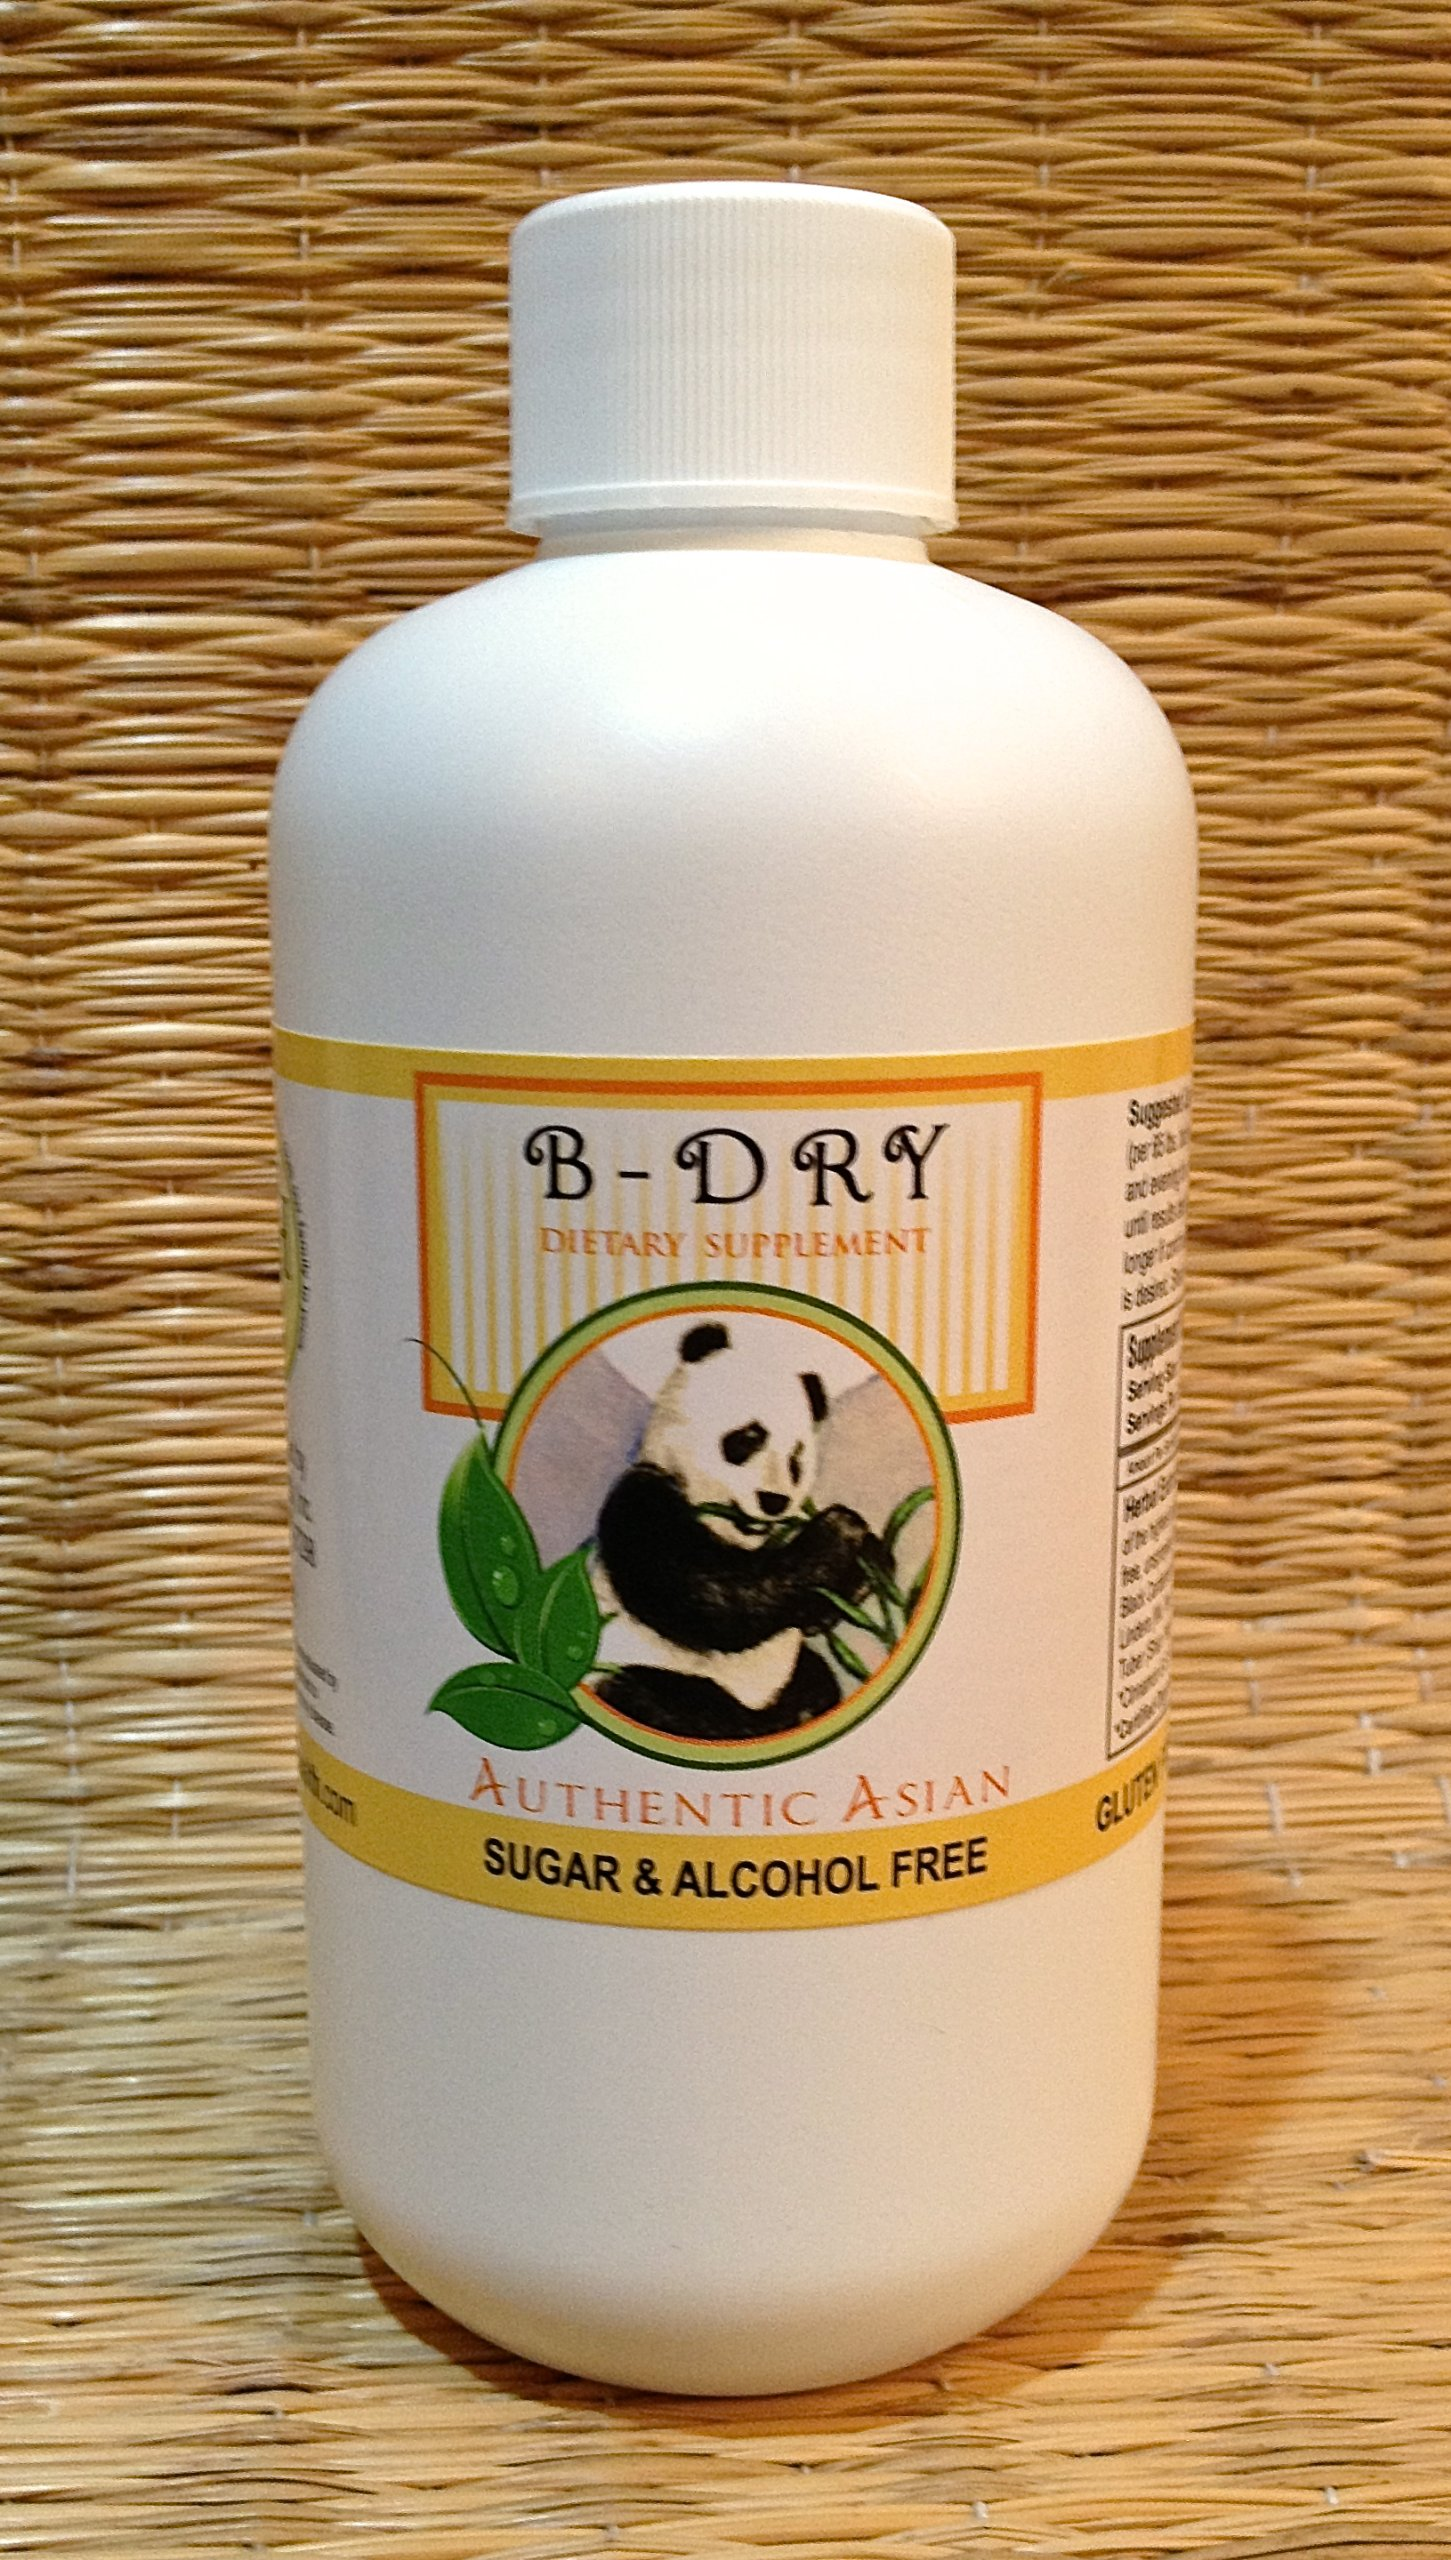 B-Dry (8 oz Bottle) - Bedwetting & Urinary Incontinence Support, Child safe. Liquid extract, Alcohol & Sugar Free. Dr. Kang's formula. Used Safely and Effectively for over 20 years. by TriLight Health